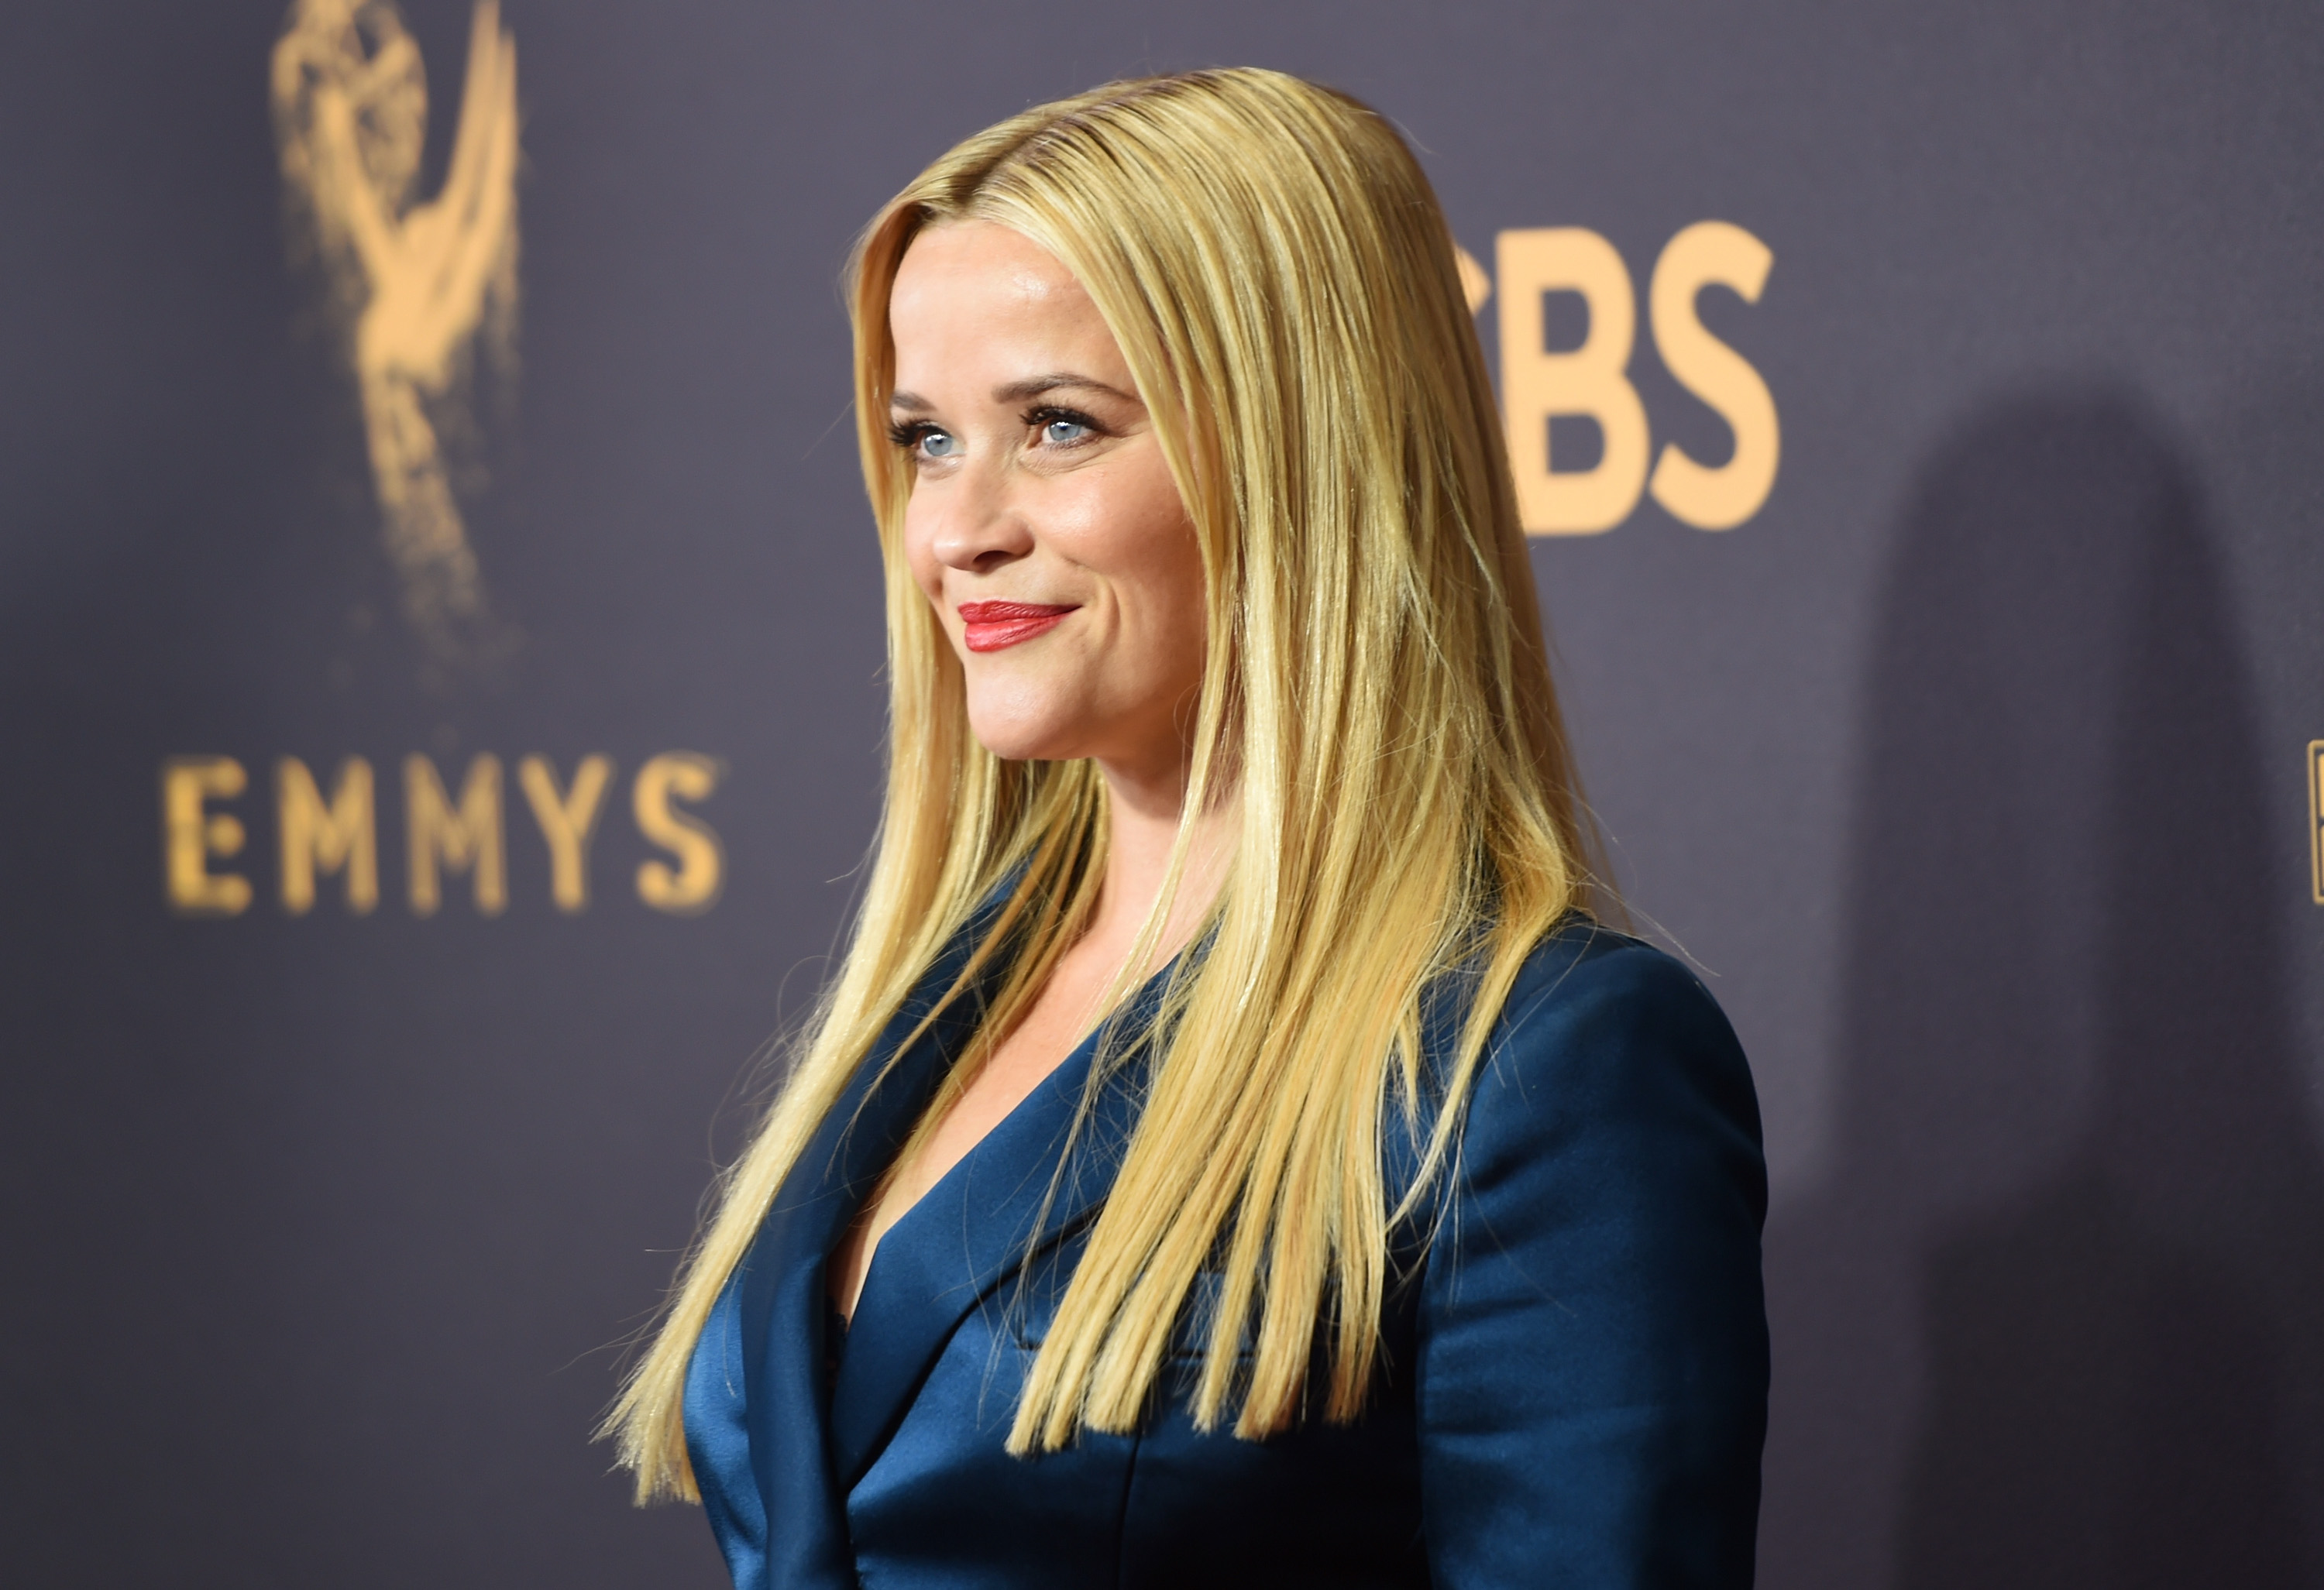 Reese Witherspoon at the 2017 Emmys.